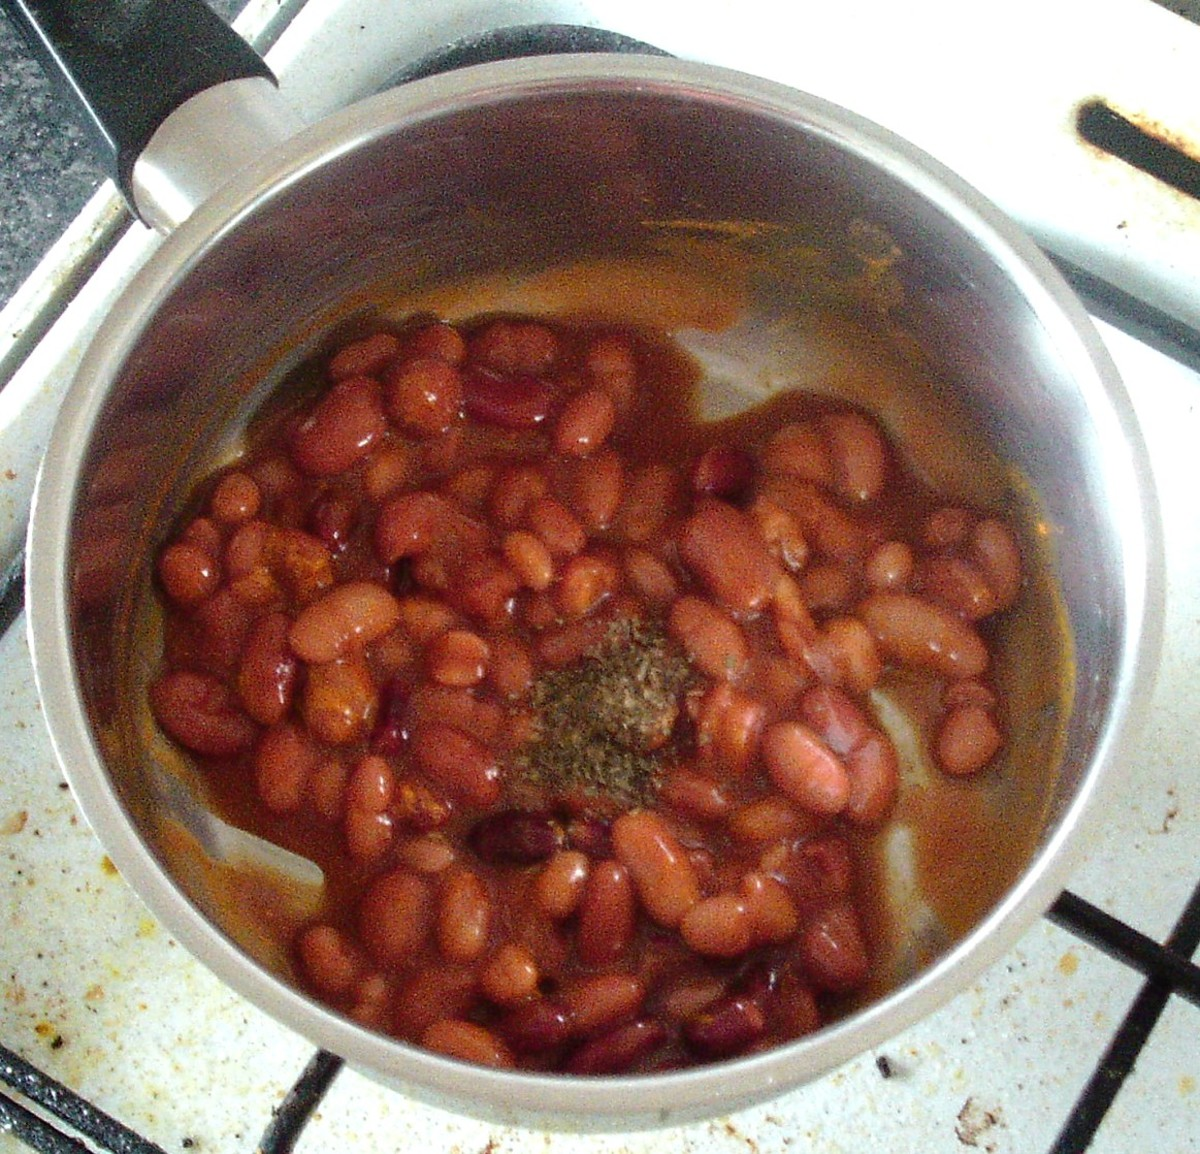 Dried herbs are added to beans in saucepan